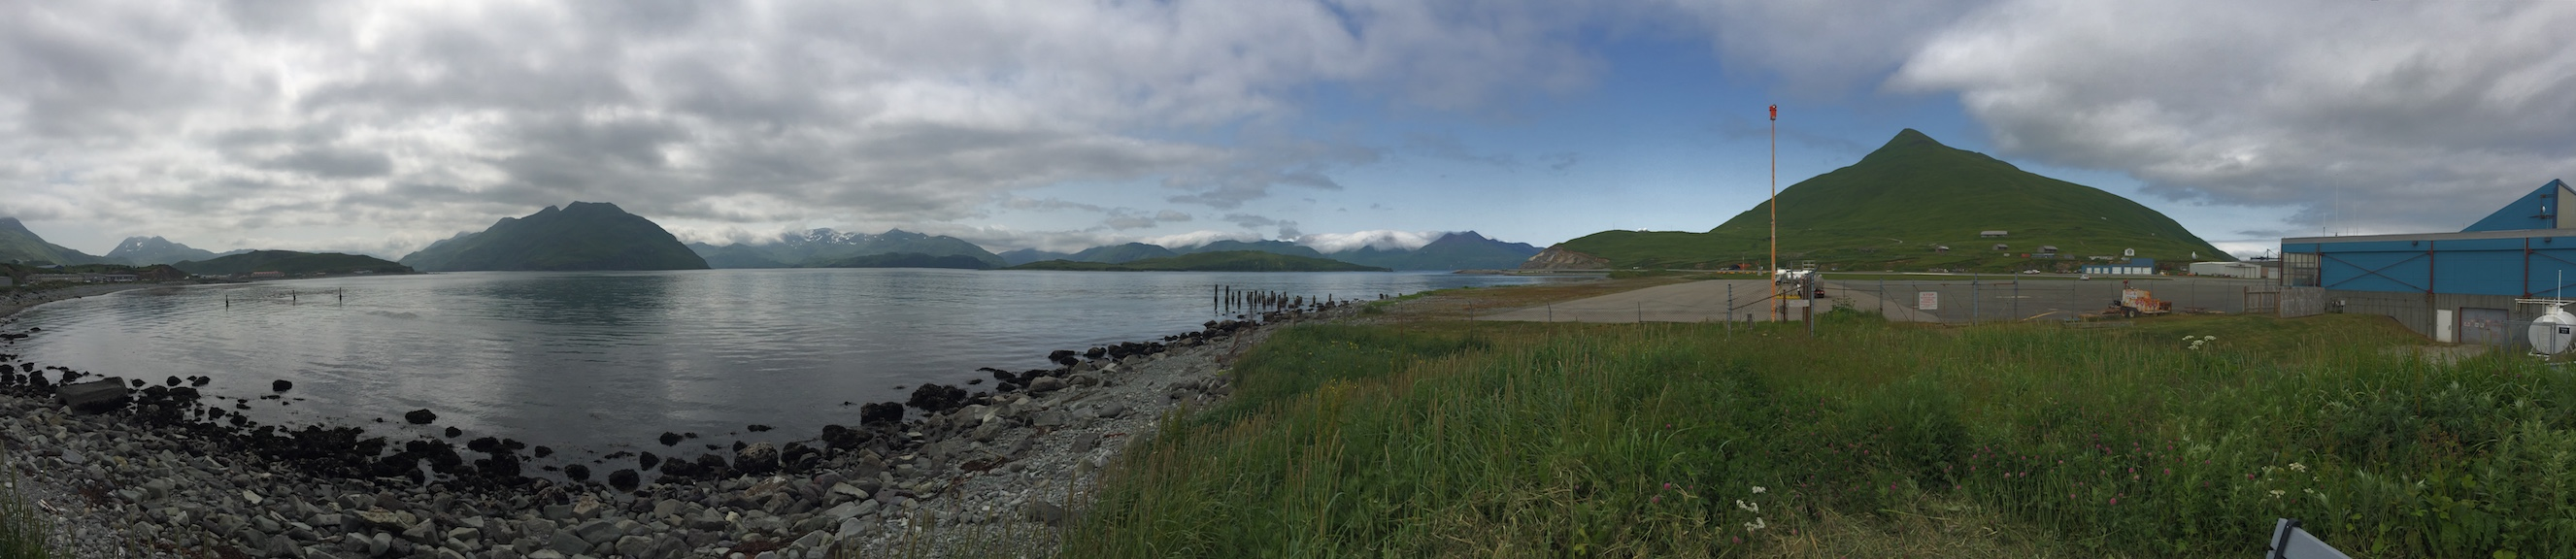 Dutch Harbor panorama